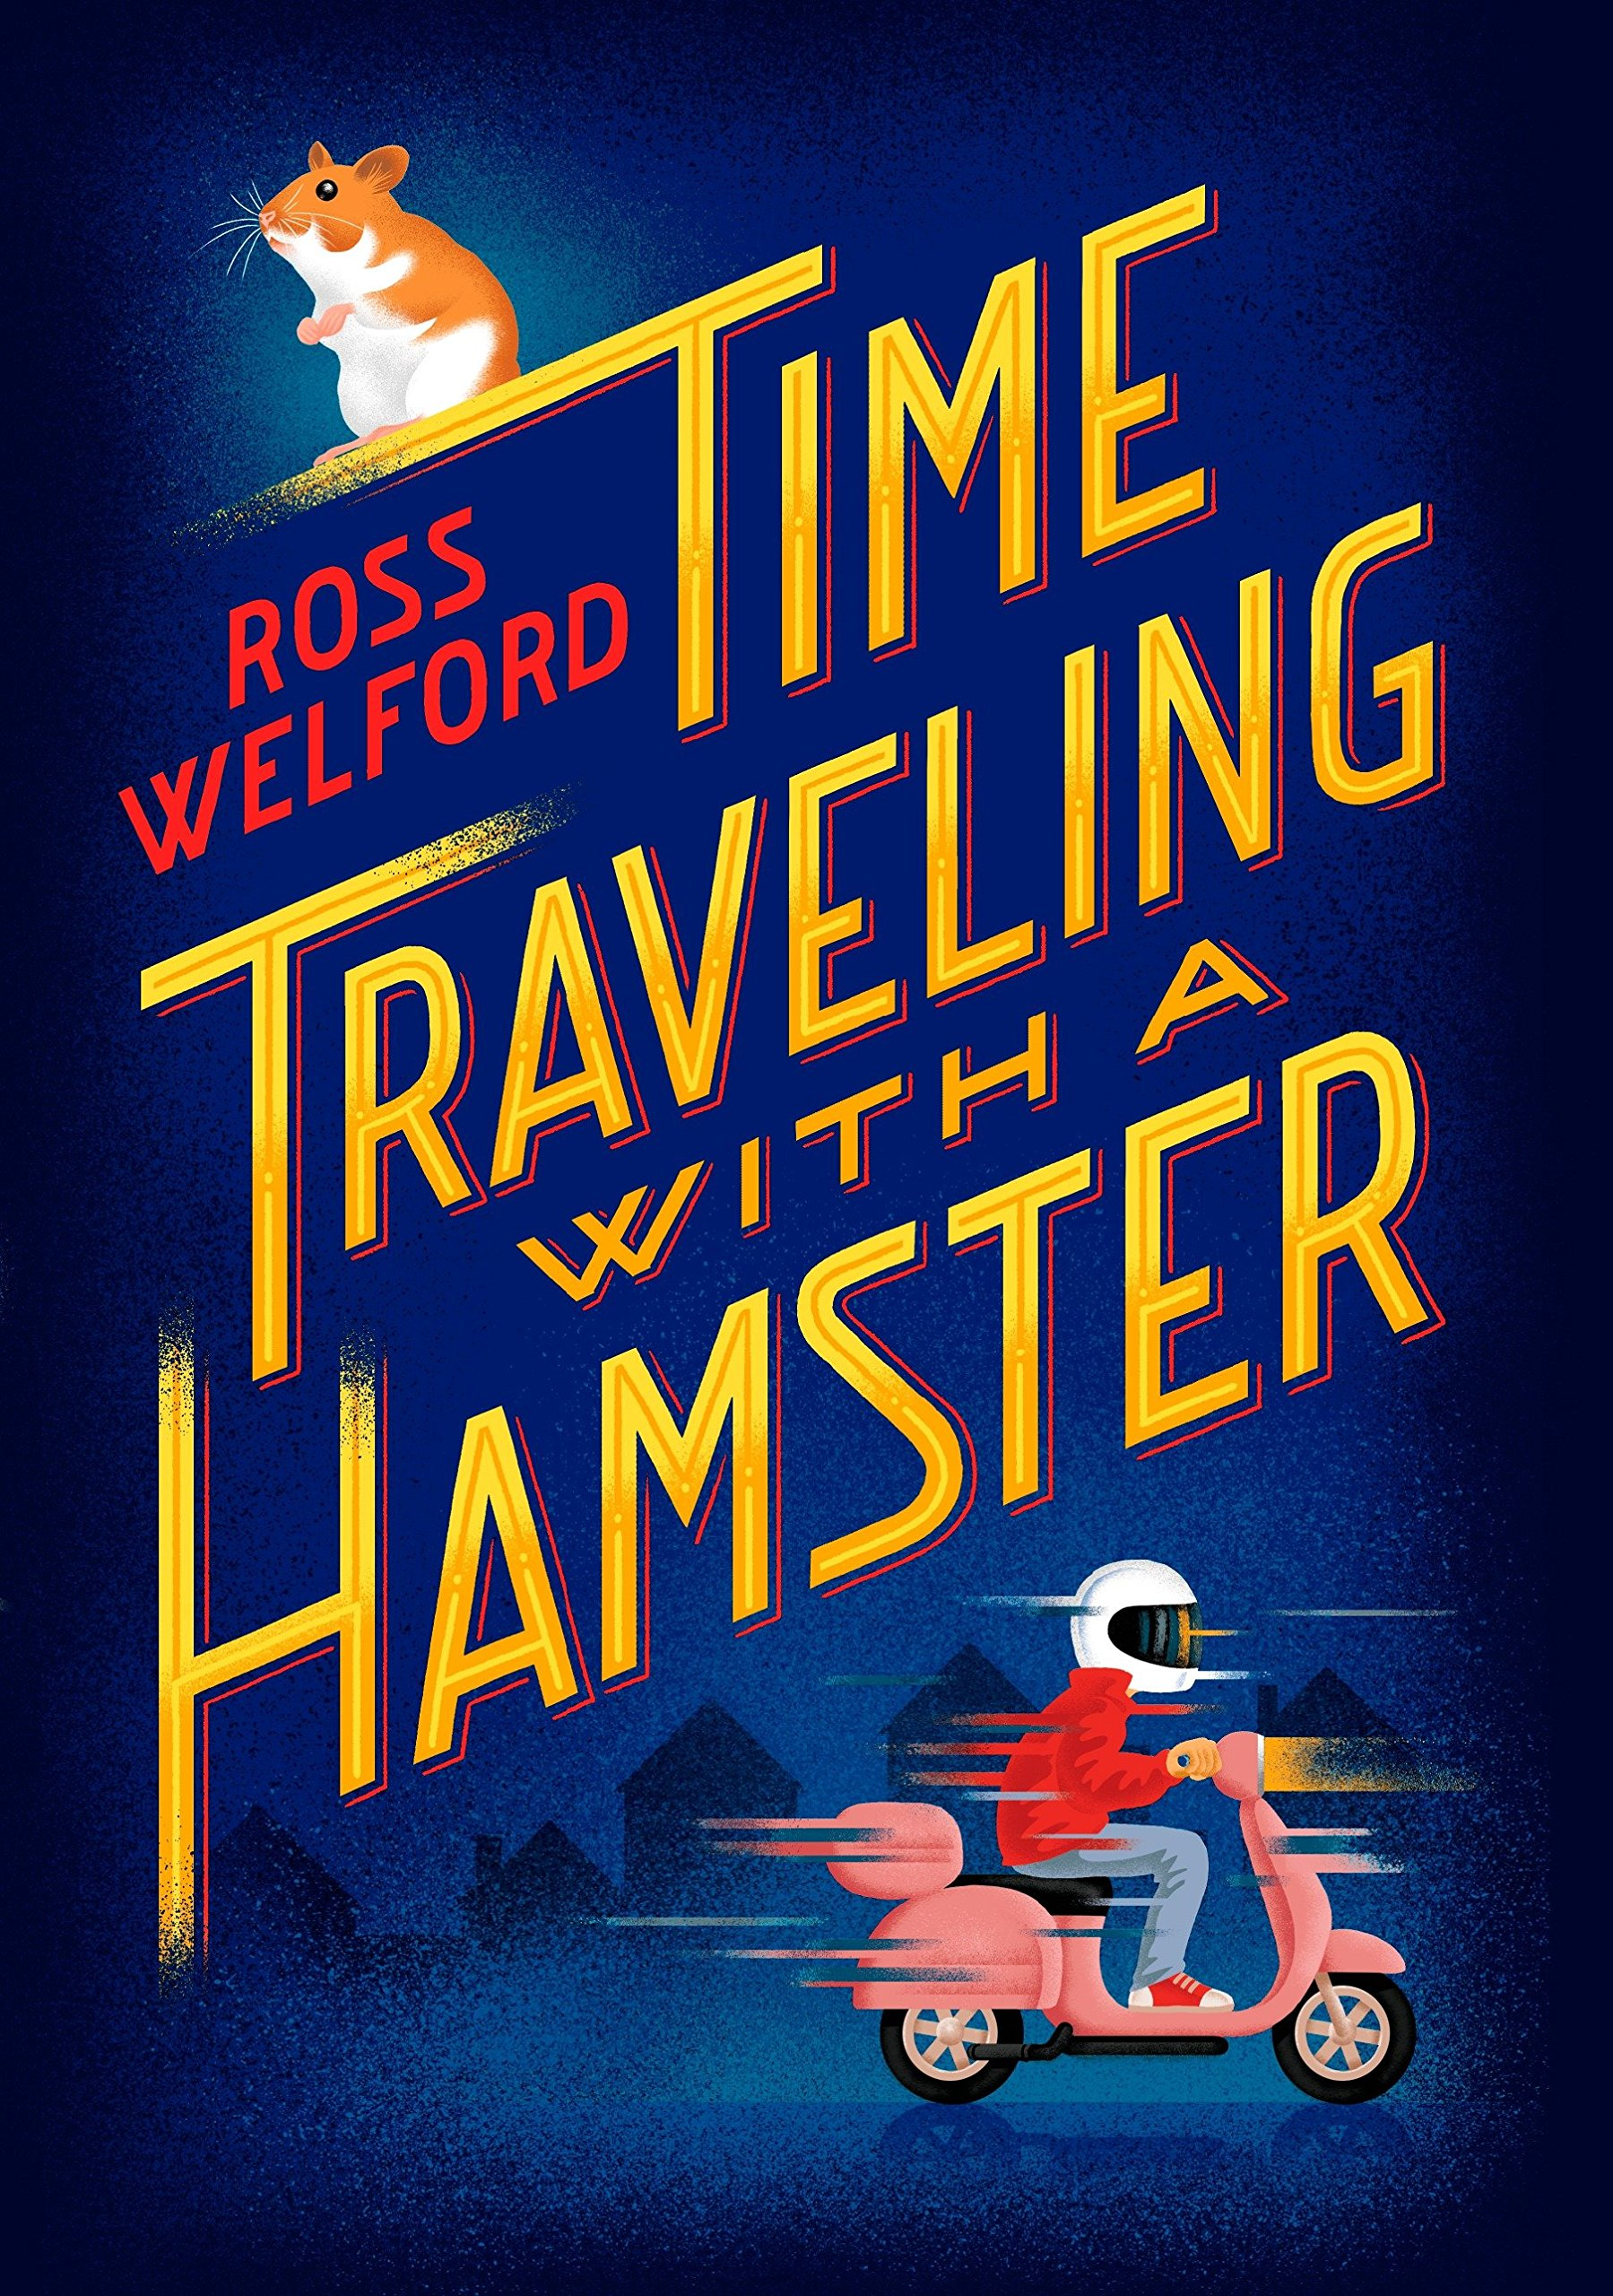 Traveling Back Through Time Other Night >> Time Traveling With A Hamster Ross Welford 9780399551499 Amazon